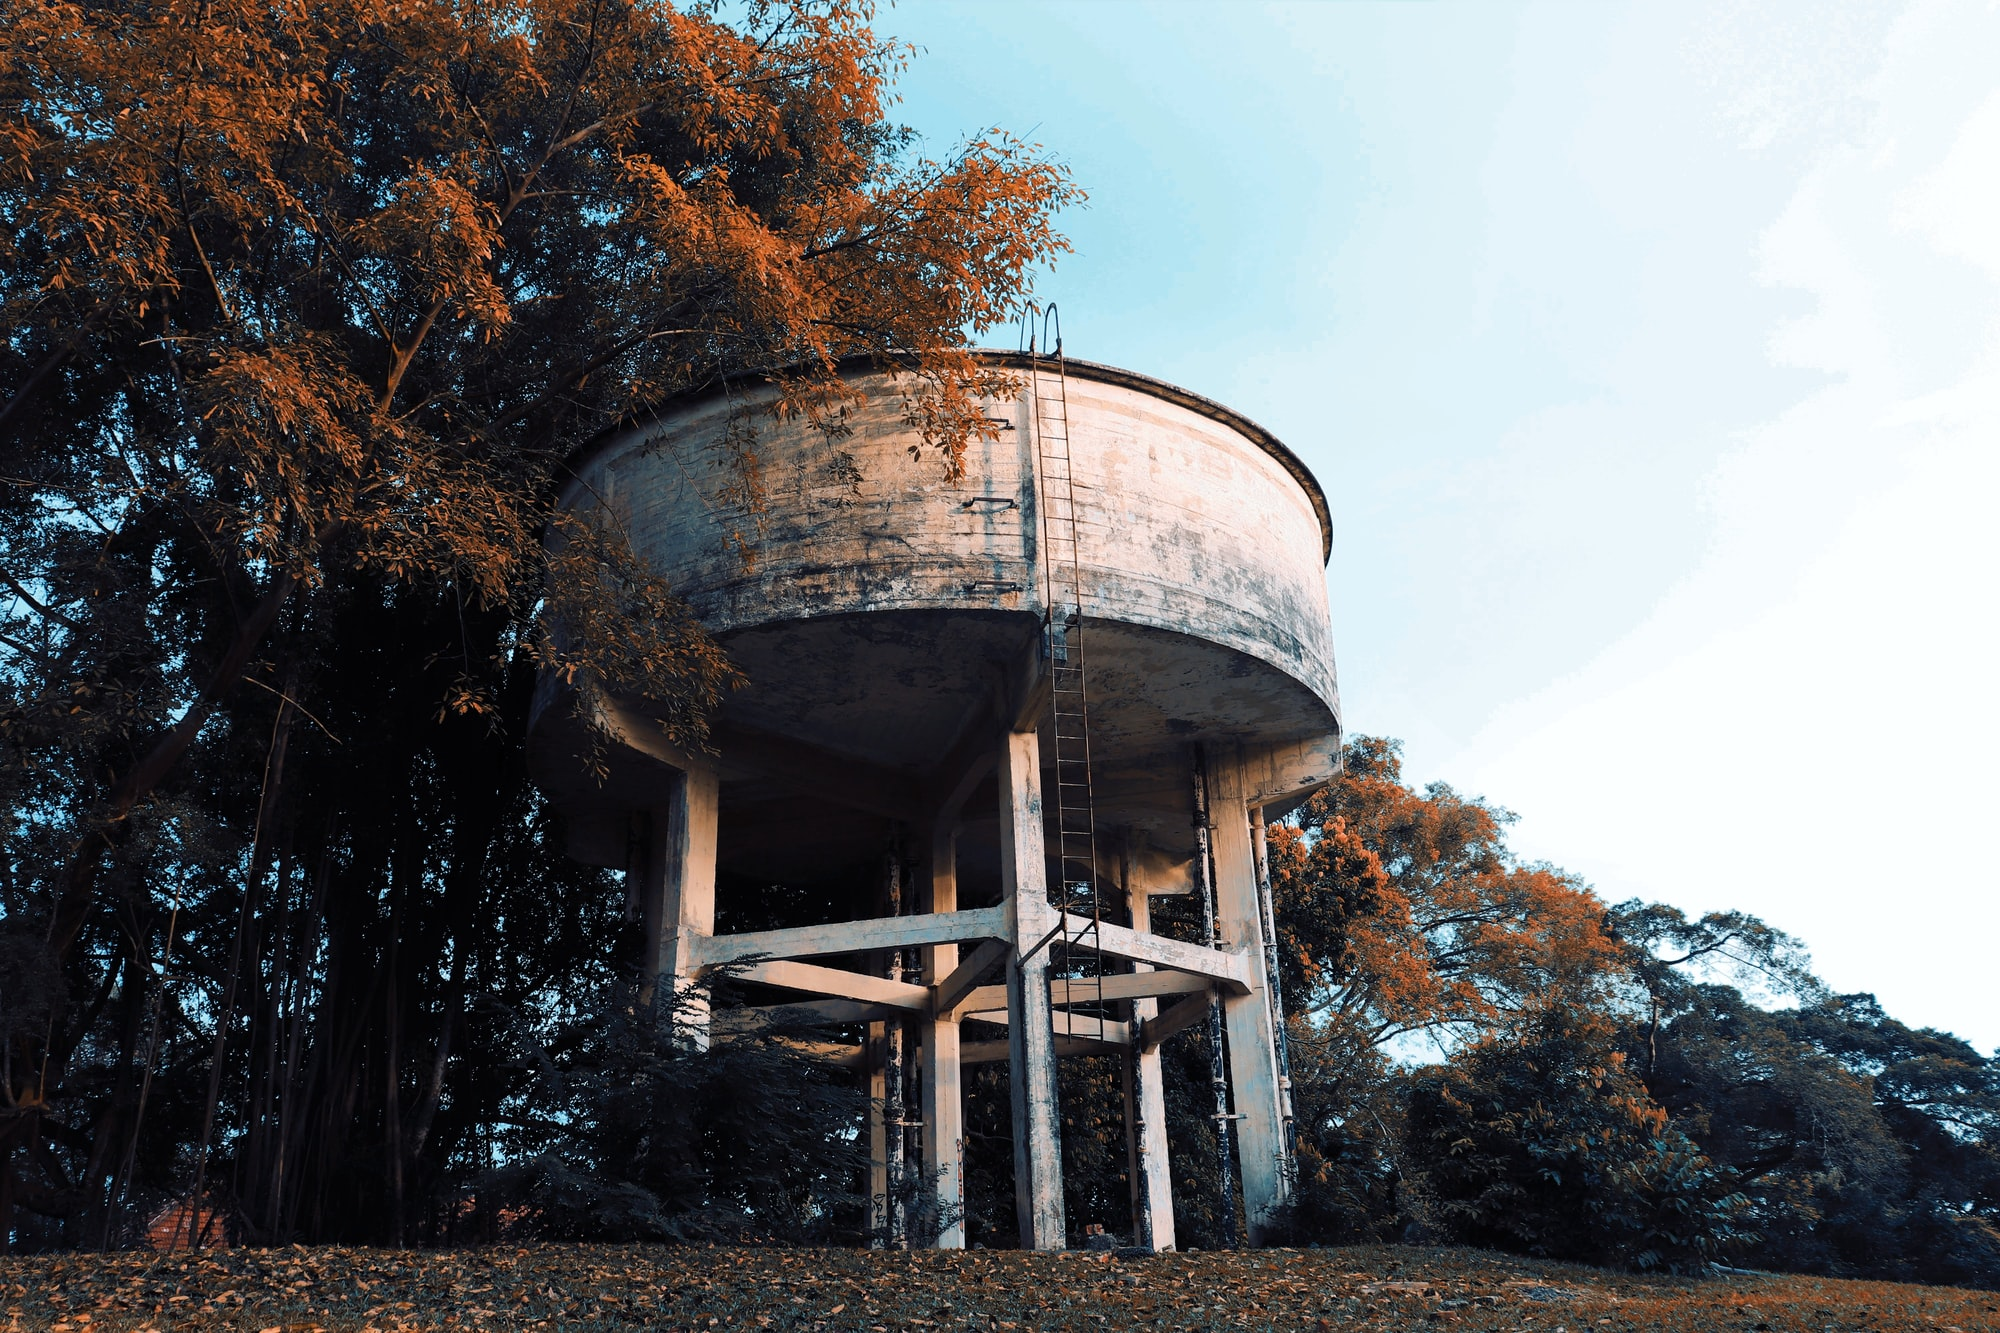 The old Portsdown Water Tank on top of the hill.